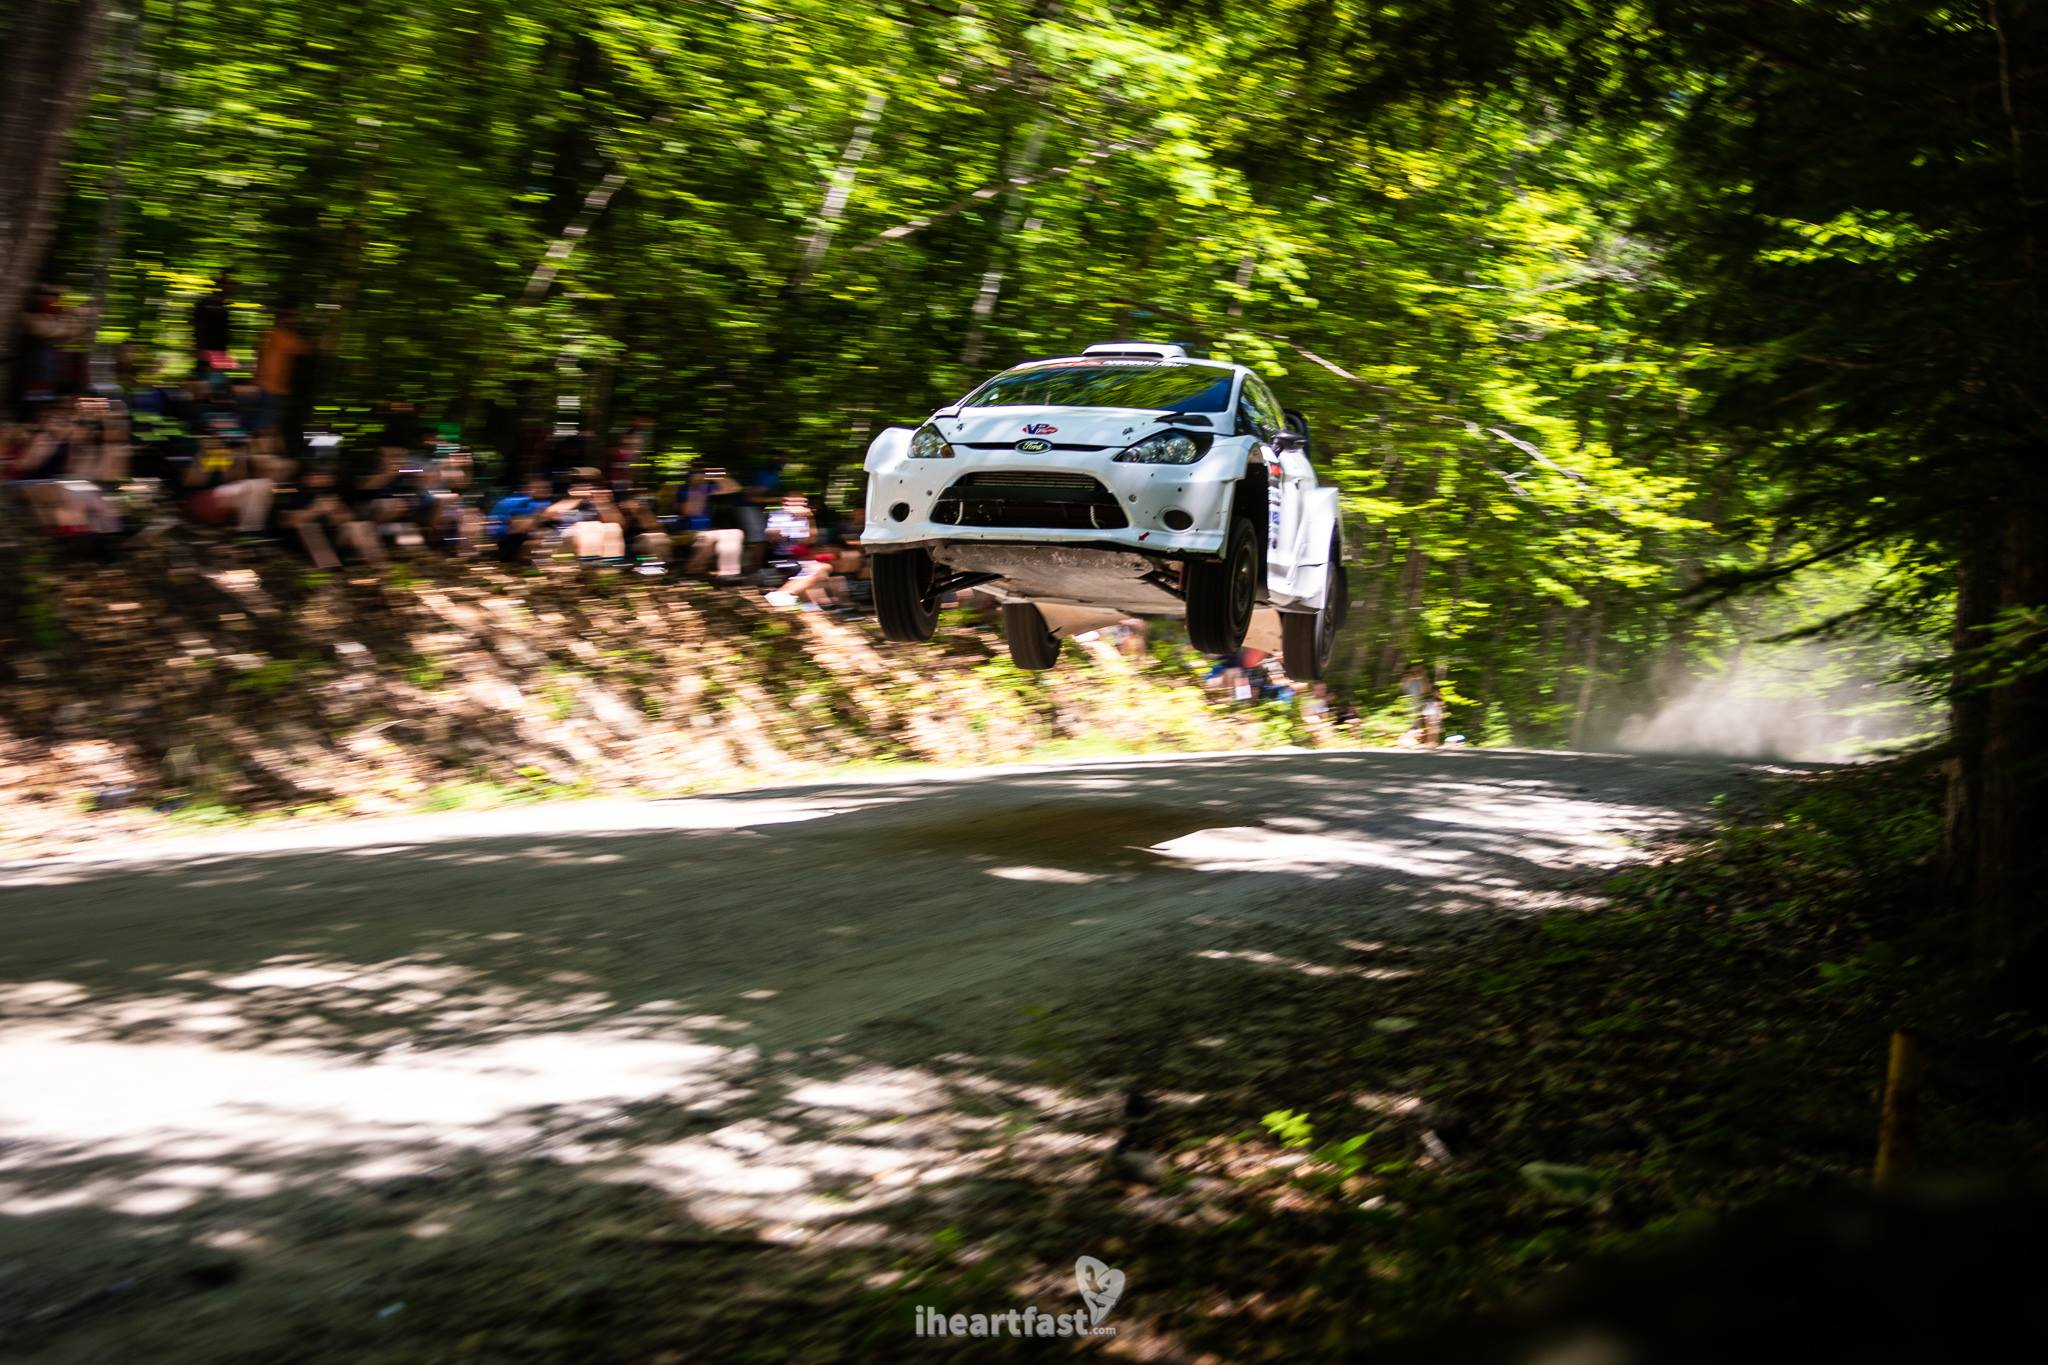 Barry McKenna and Leon Jordan flying high in their Fiesta R5 at NEFR